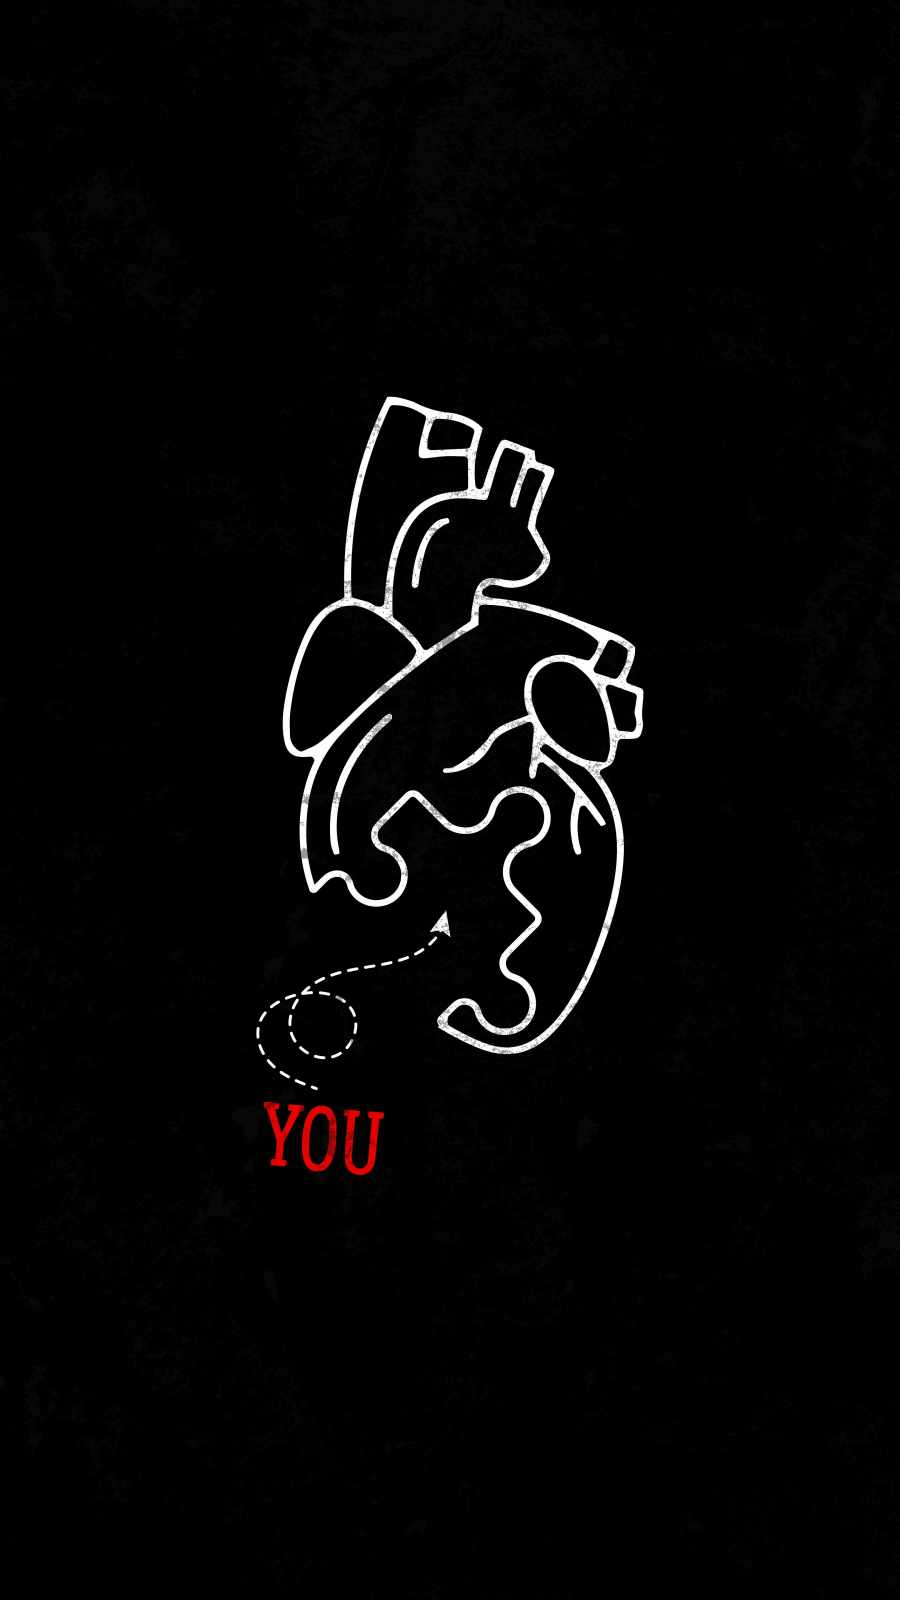 You are Part of my Heart